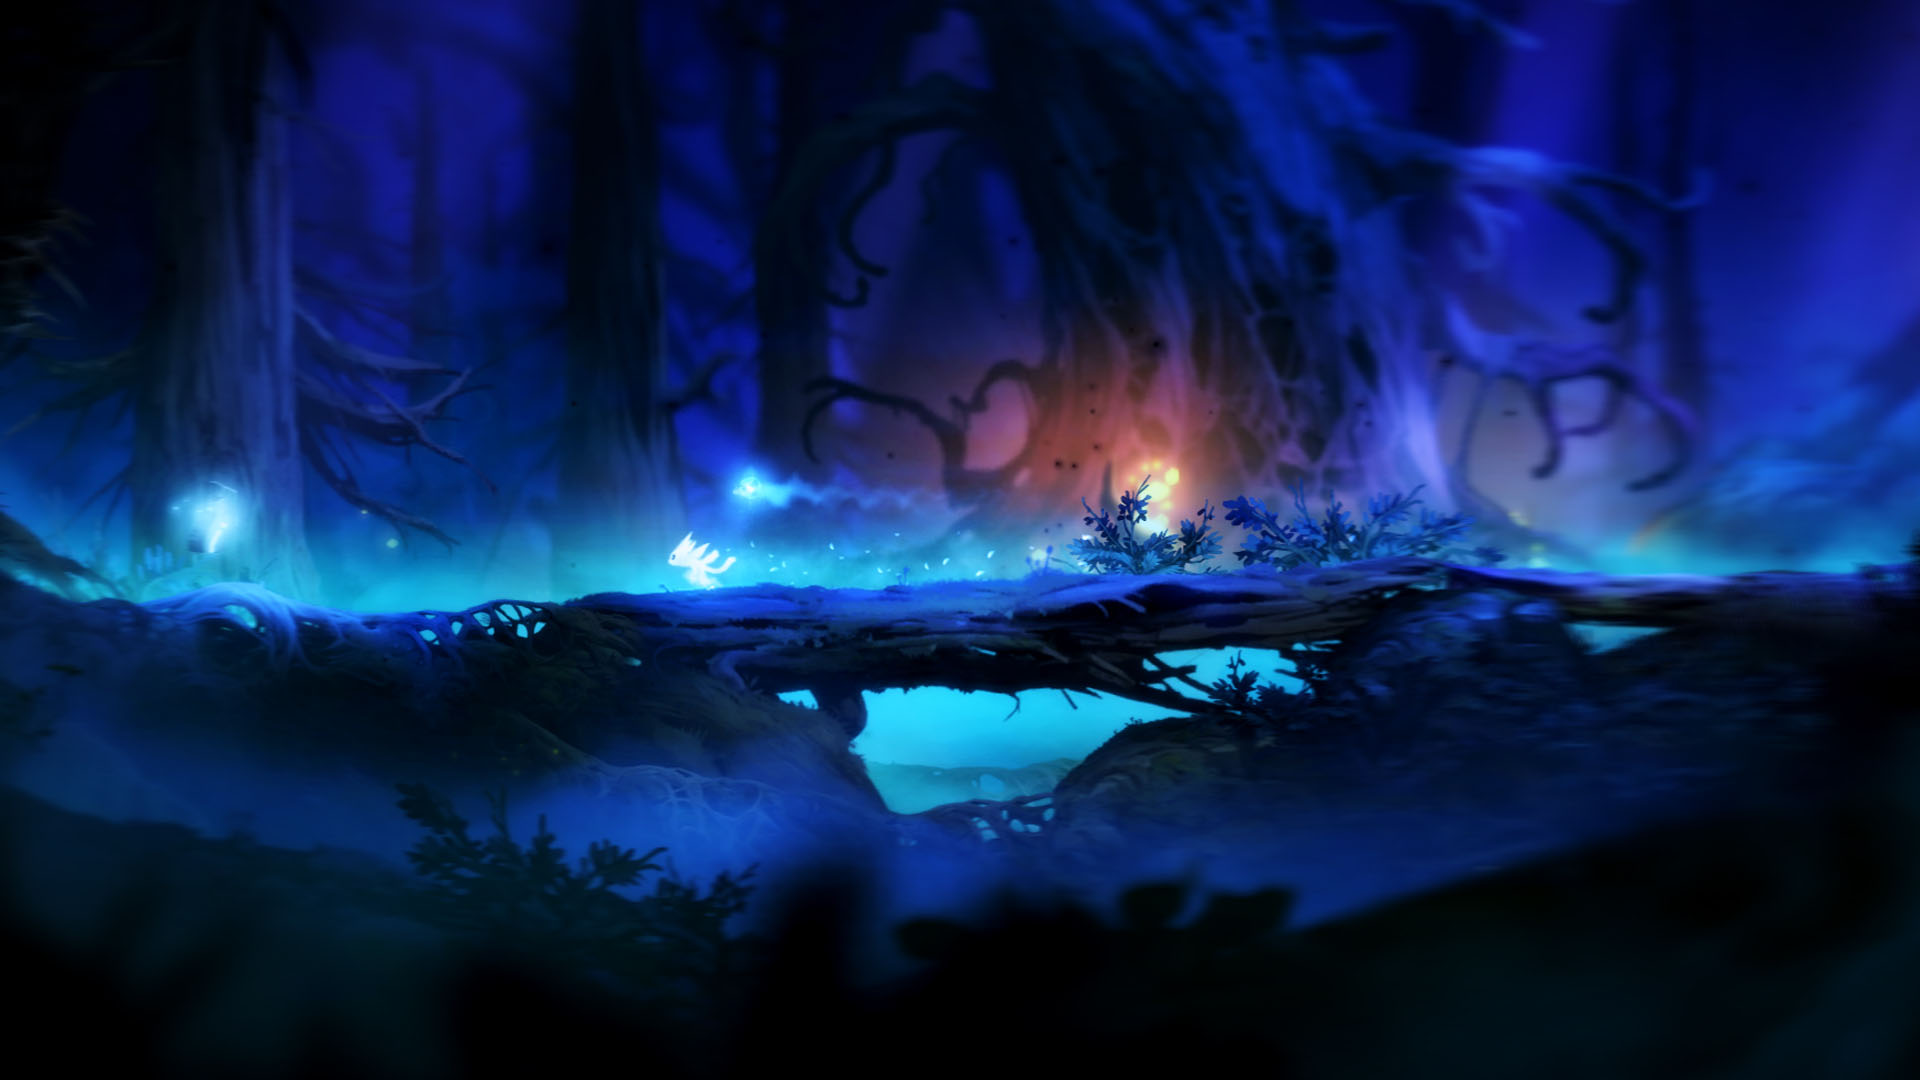 Special Ori And The Blind Forest Wallpaper